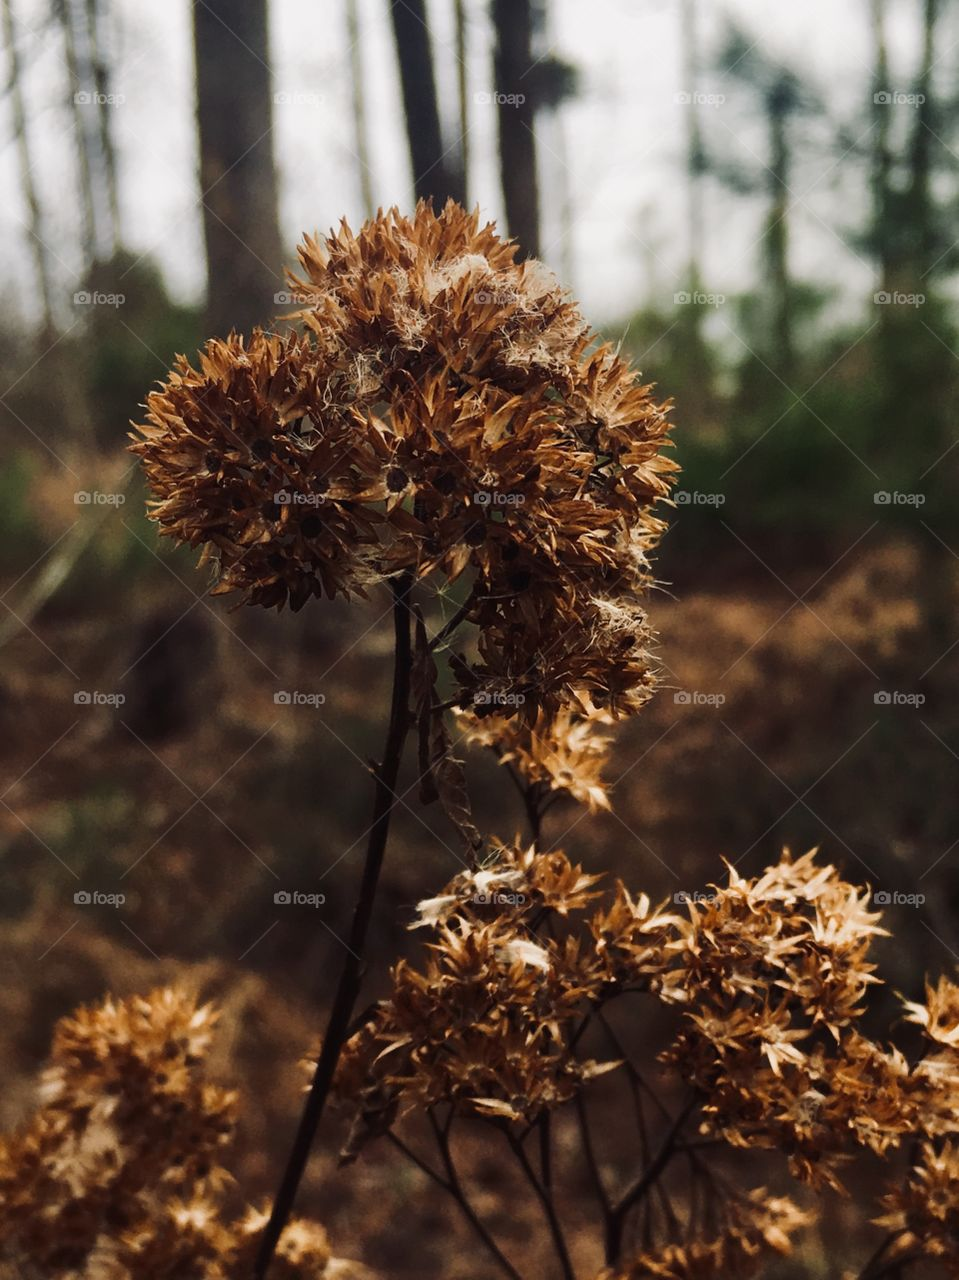 Bronze-colored dried weed in winter's woodlands